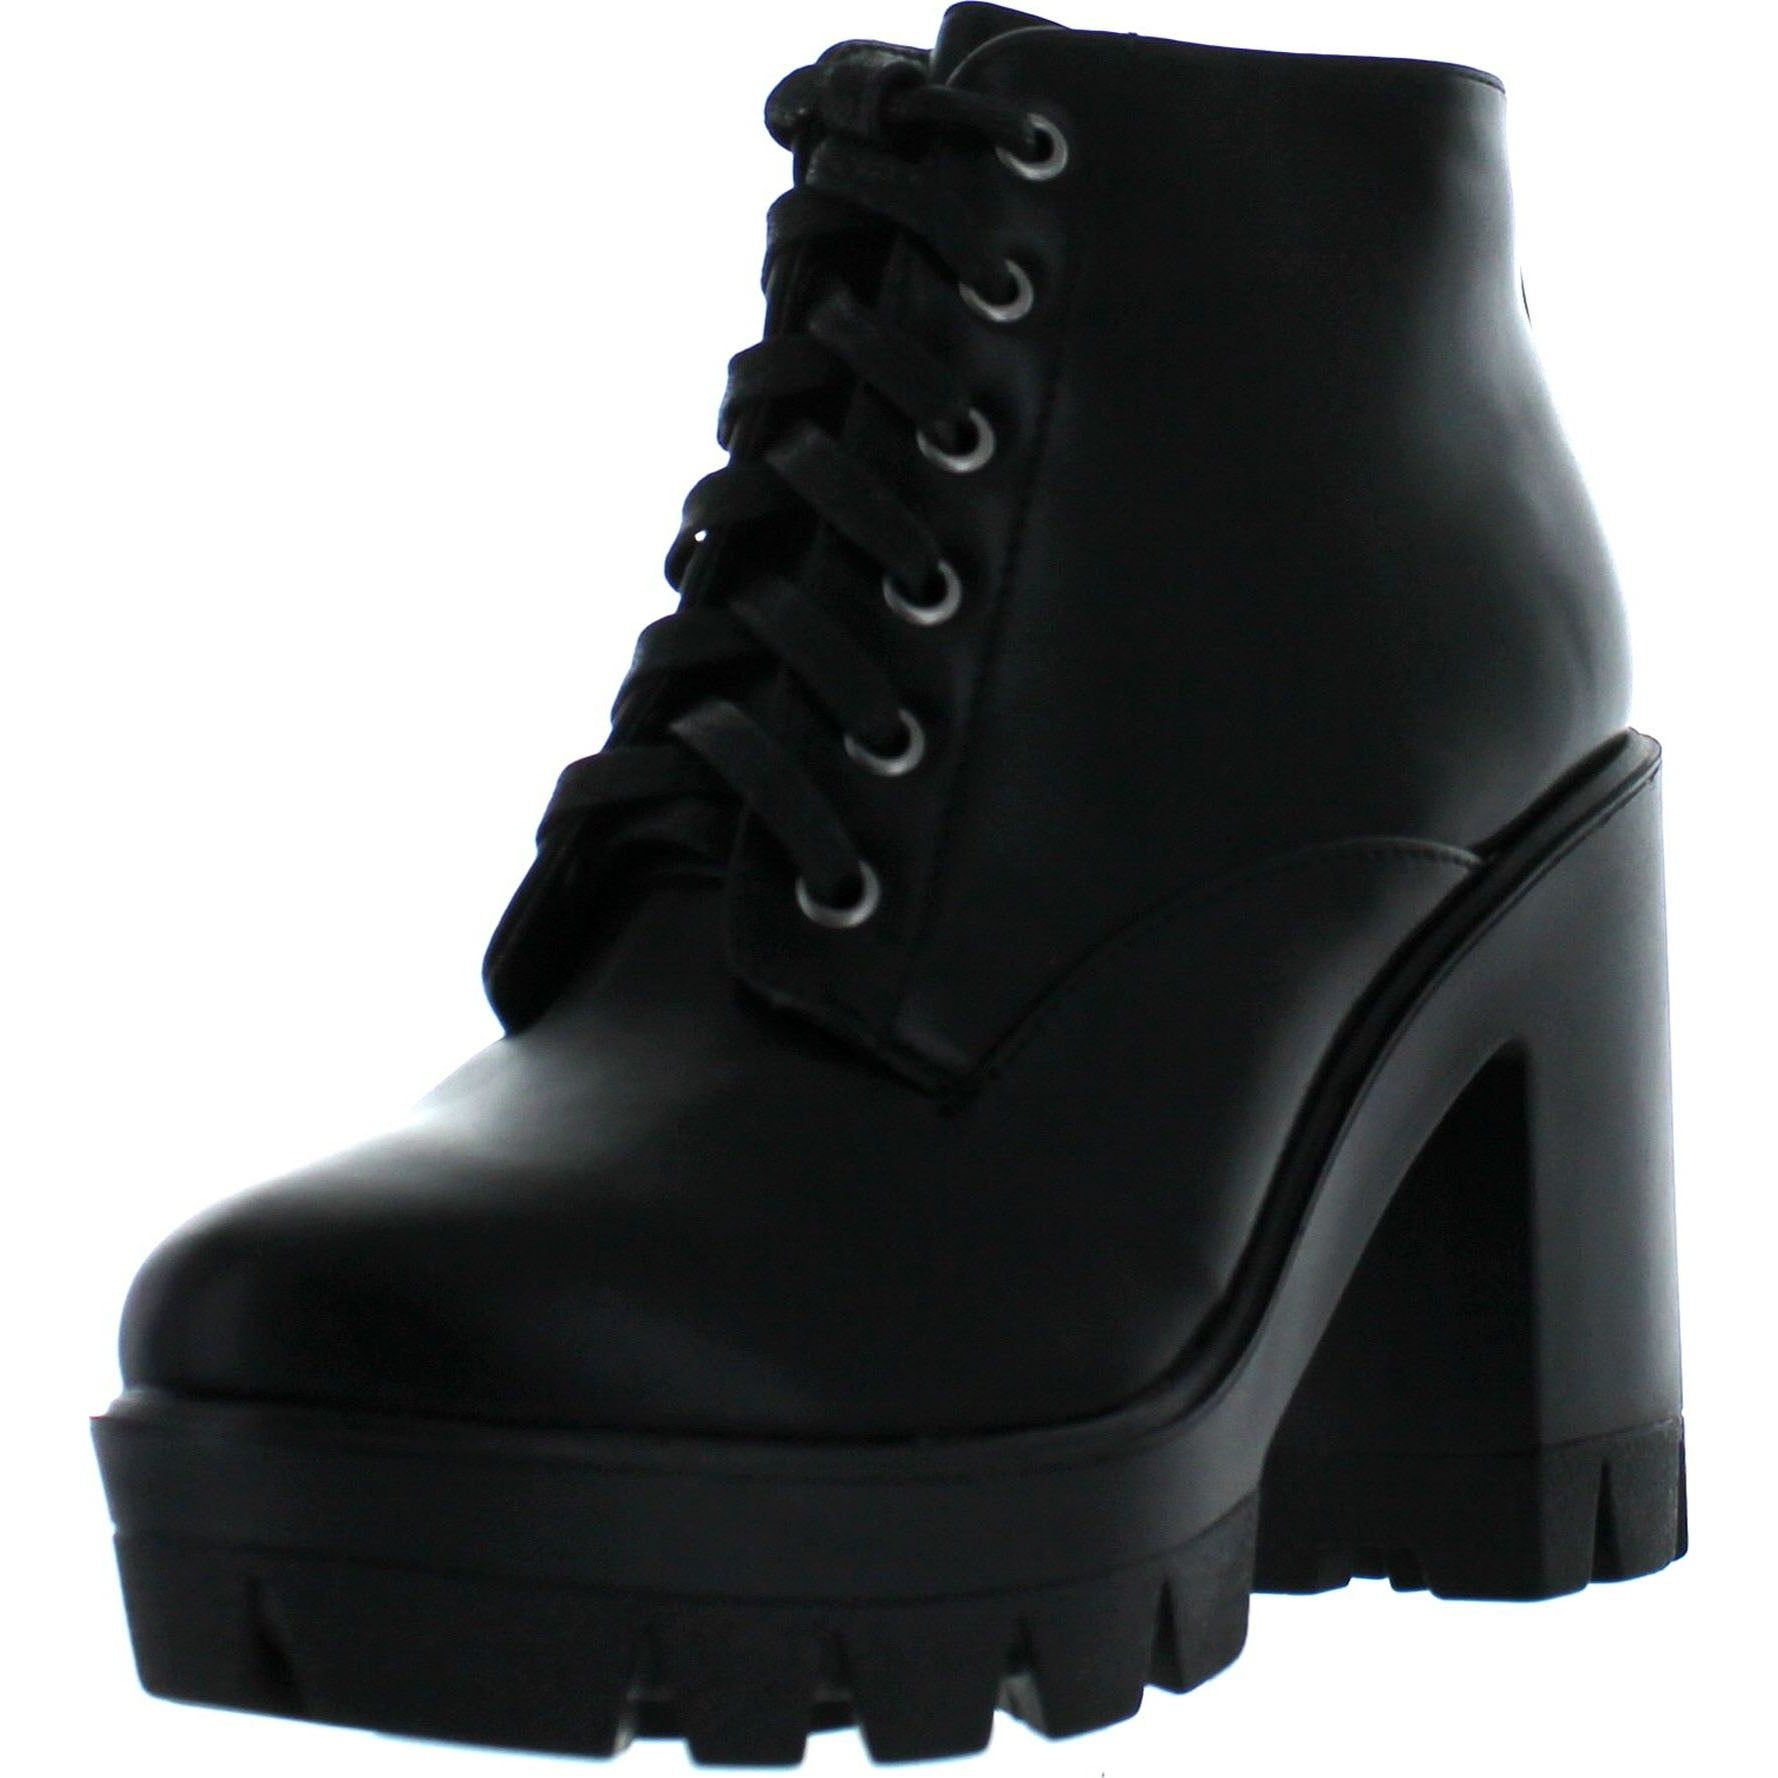 be59a4ede43d Bamboo Jonas-02 Women Lace Up Chunky Heel Lug Sole Platform Combat Ankle  Bootie